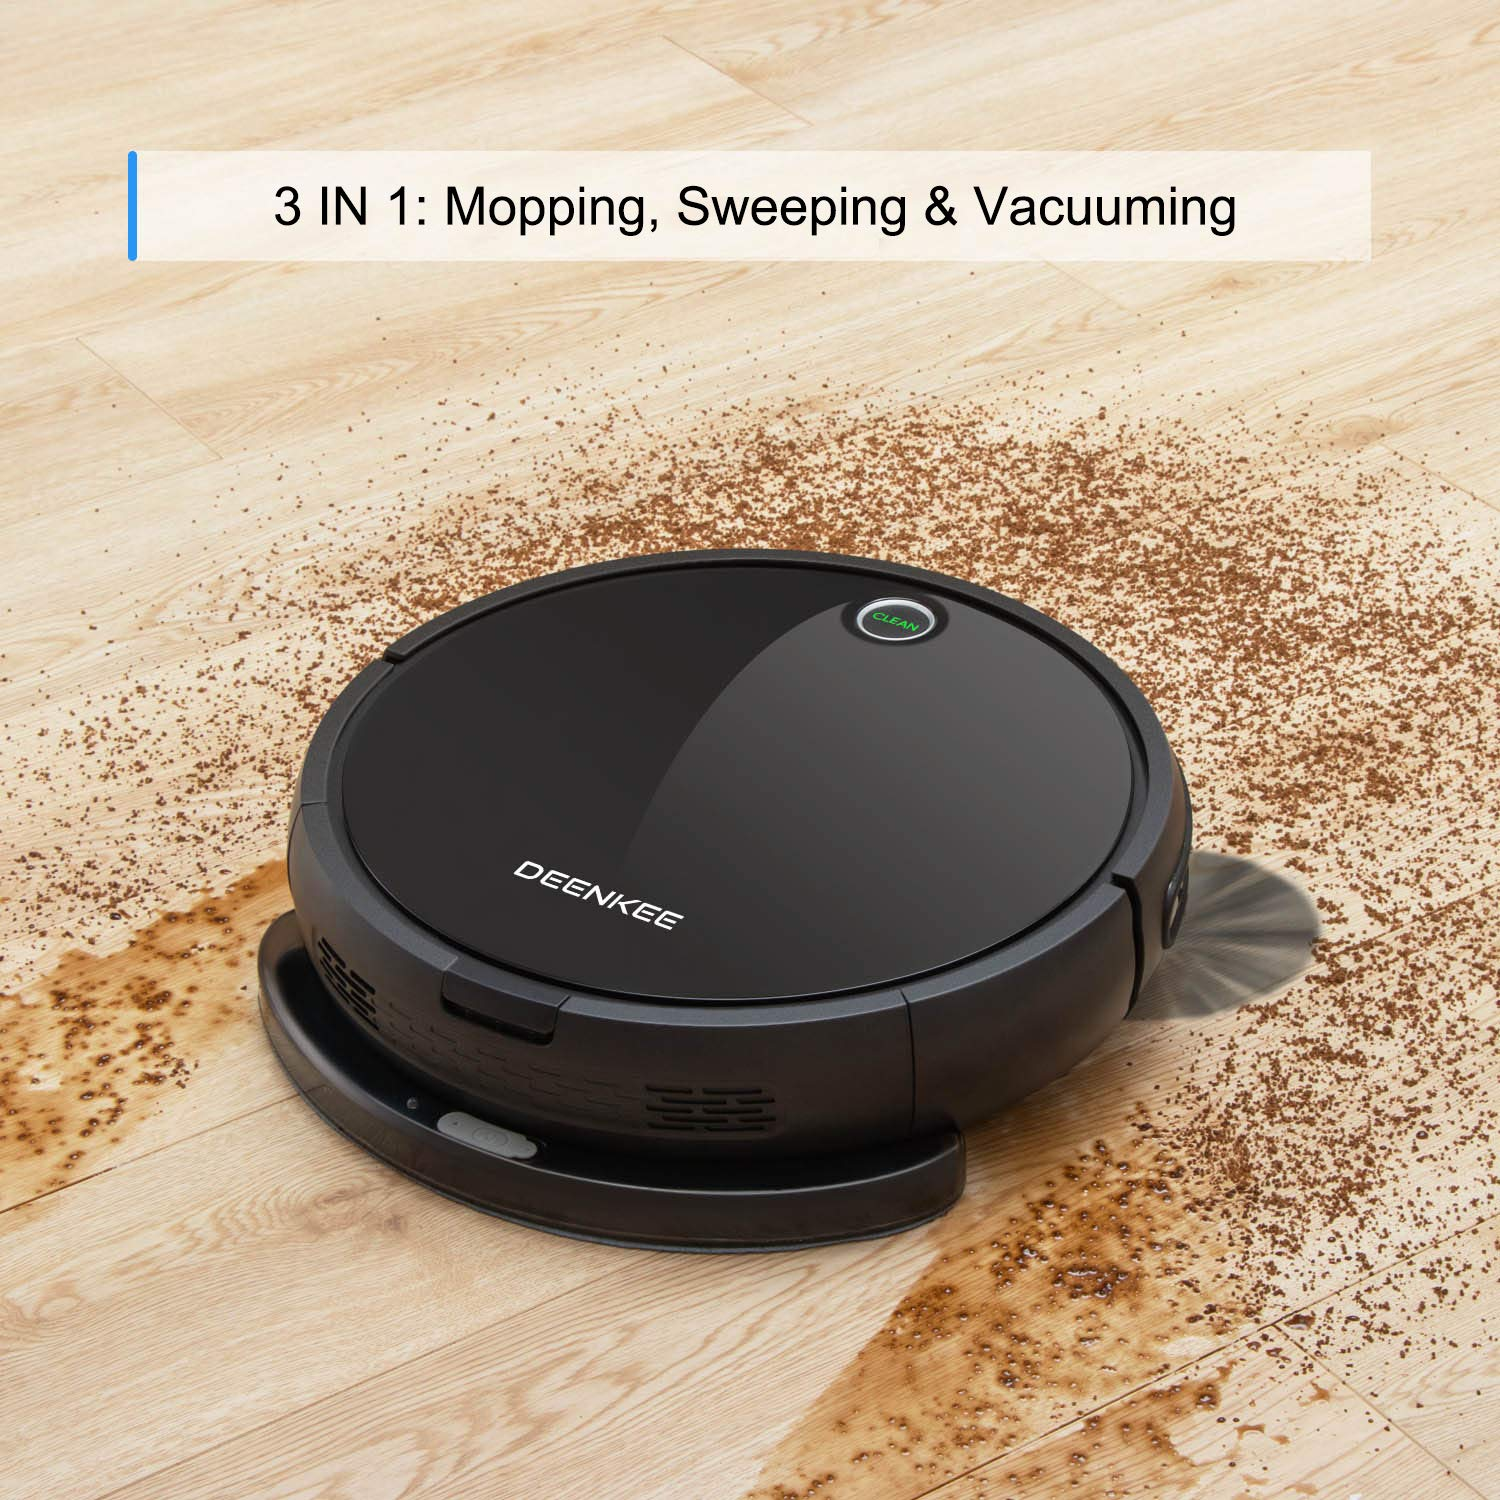 DEENKEE i7 Robot Vacuum and Mop, 3 in 1 Smart Robotic Vacuum Cleaner Automatic Sweeper for Pet Hair, Carpet, Hardwood Floors, Tile